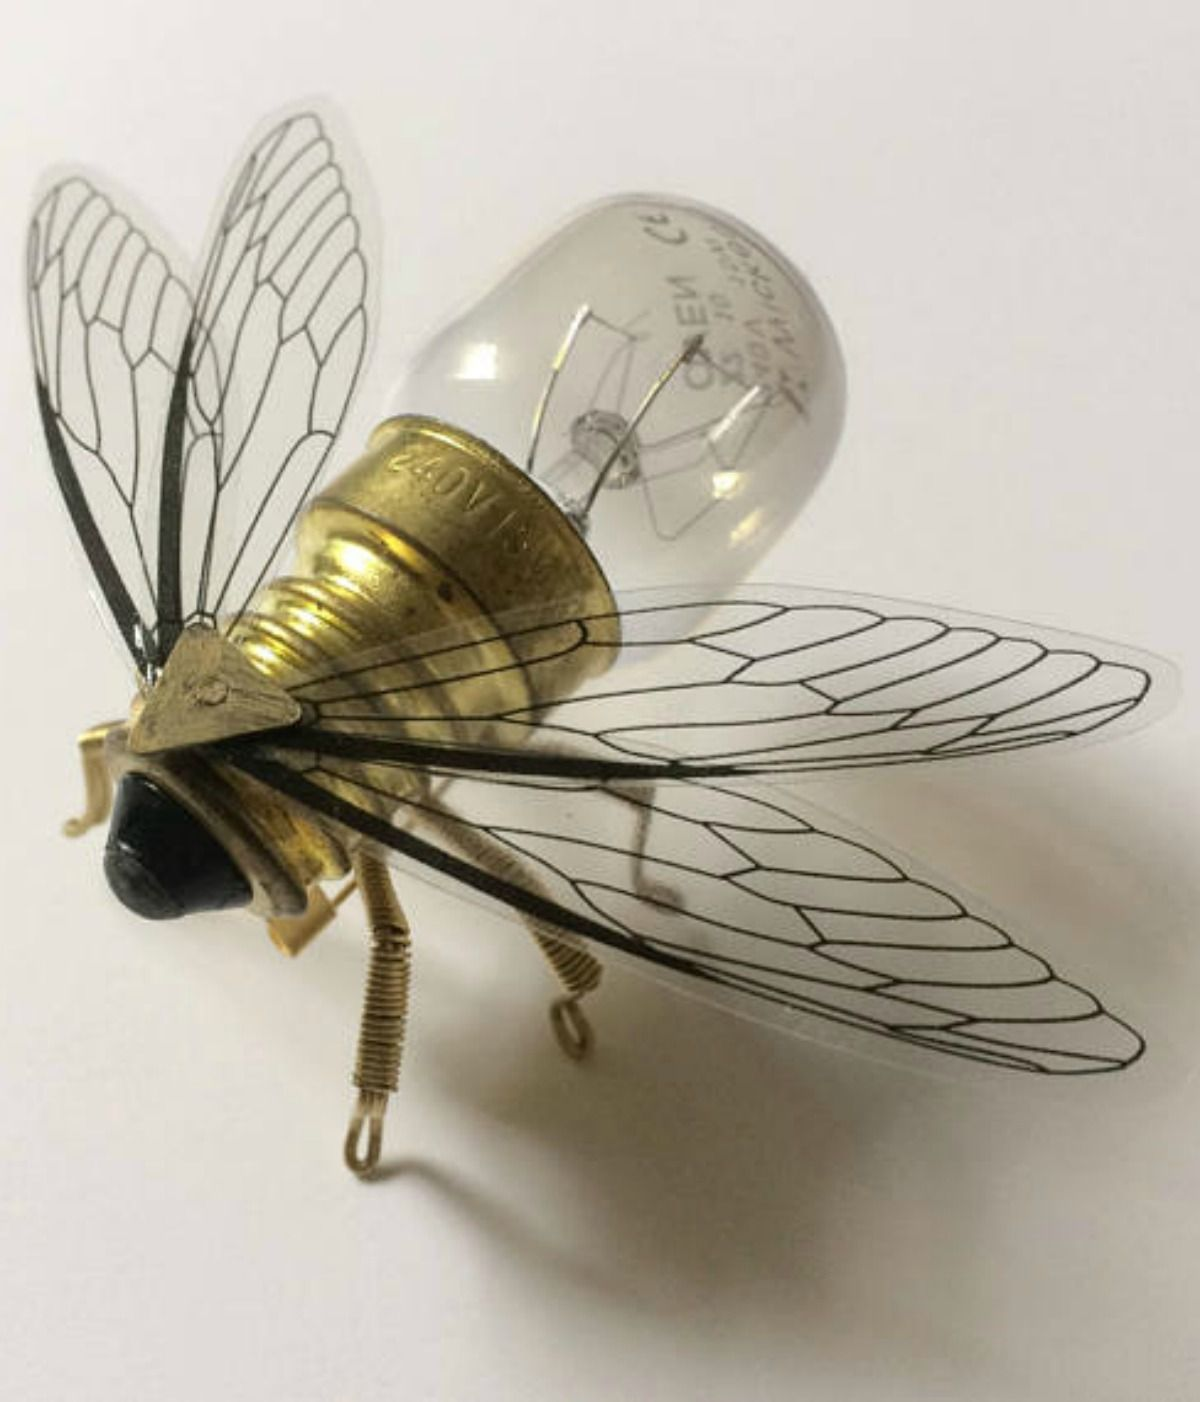 fdd366884ba Bee Lightbulb Brooch - Unique Steampunk Steam Punk Clockwork Jewelry  ad   Etsy  bees  steampunk